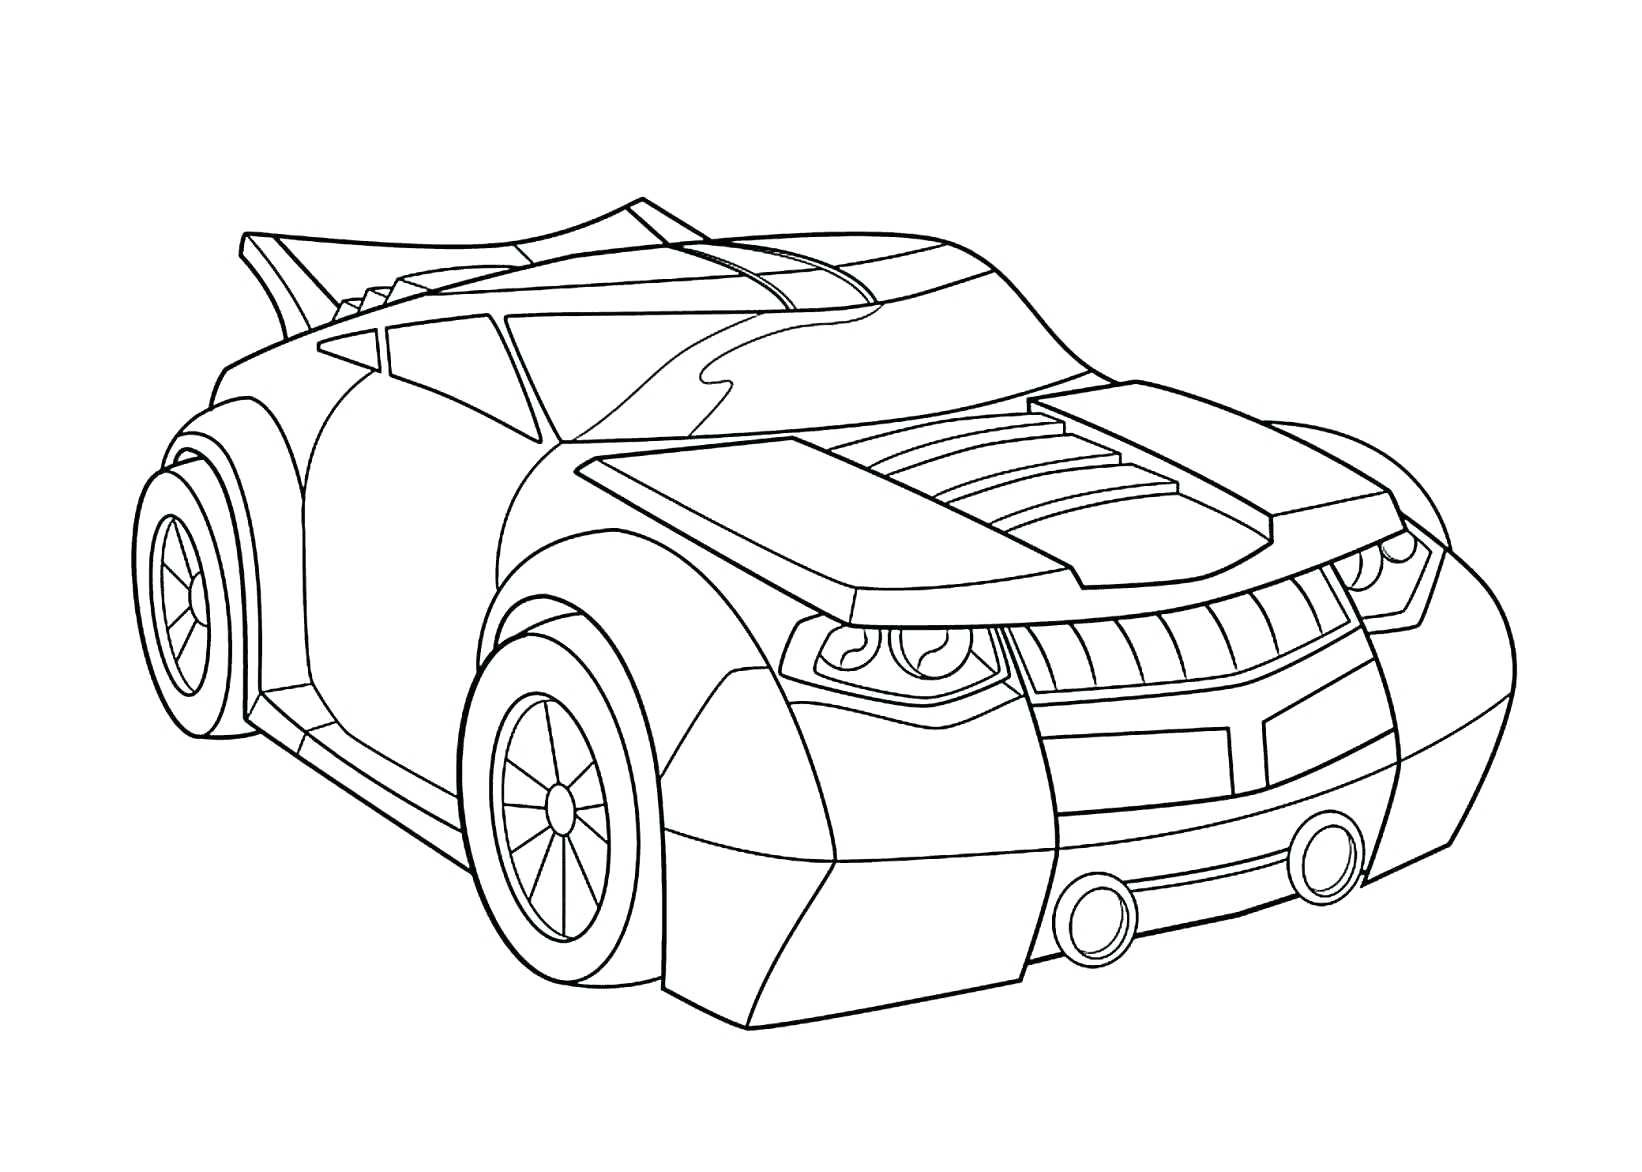 Auto Ausmalbilder Cars : Car Drawing Template At Getdrawings Com Free For Personal Use Car